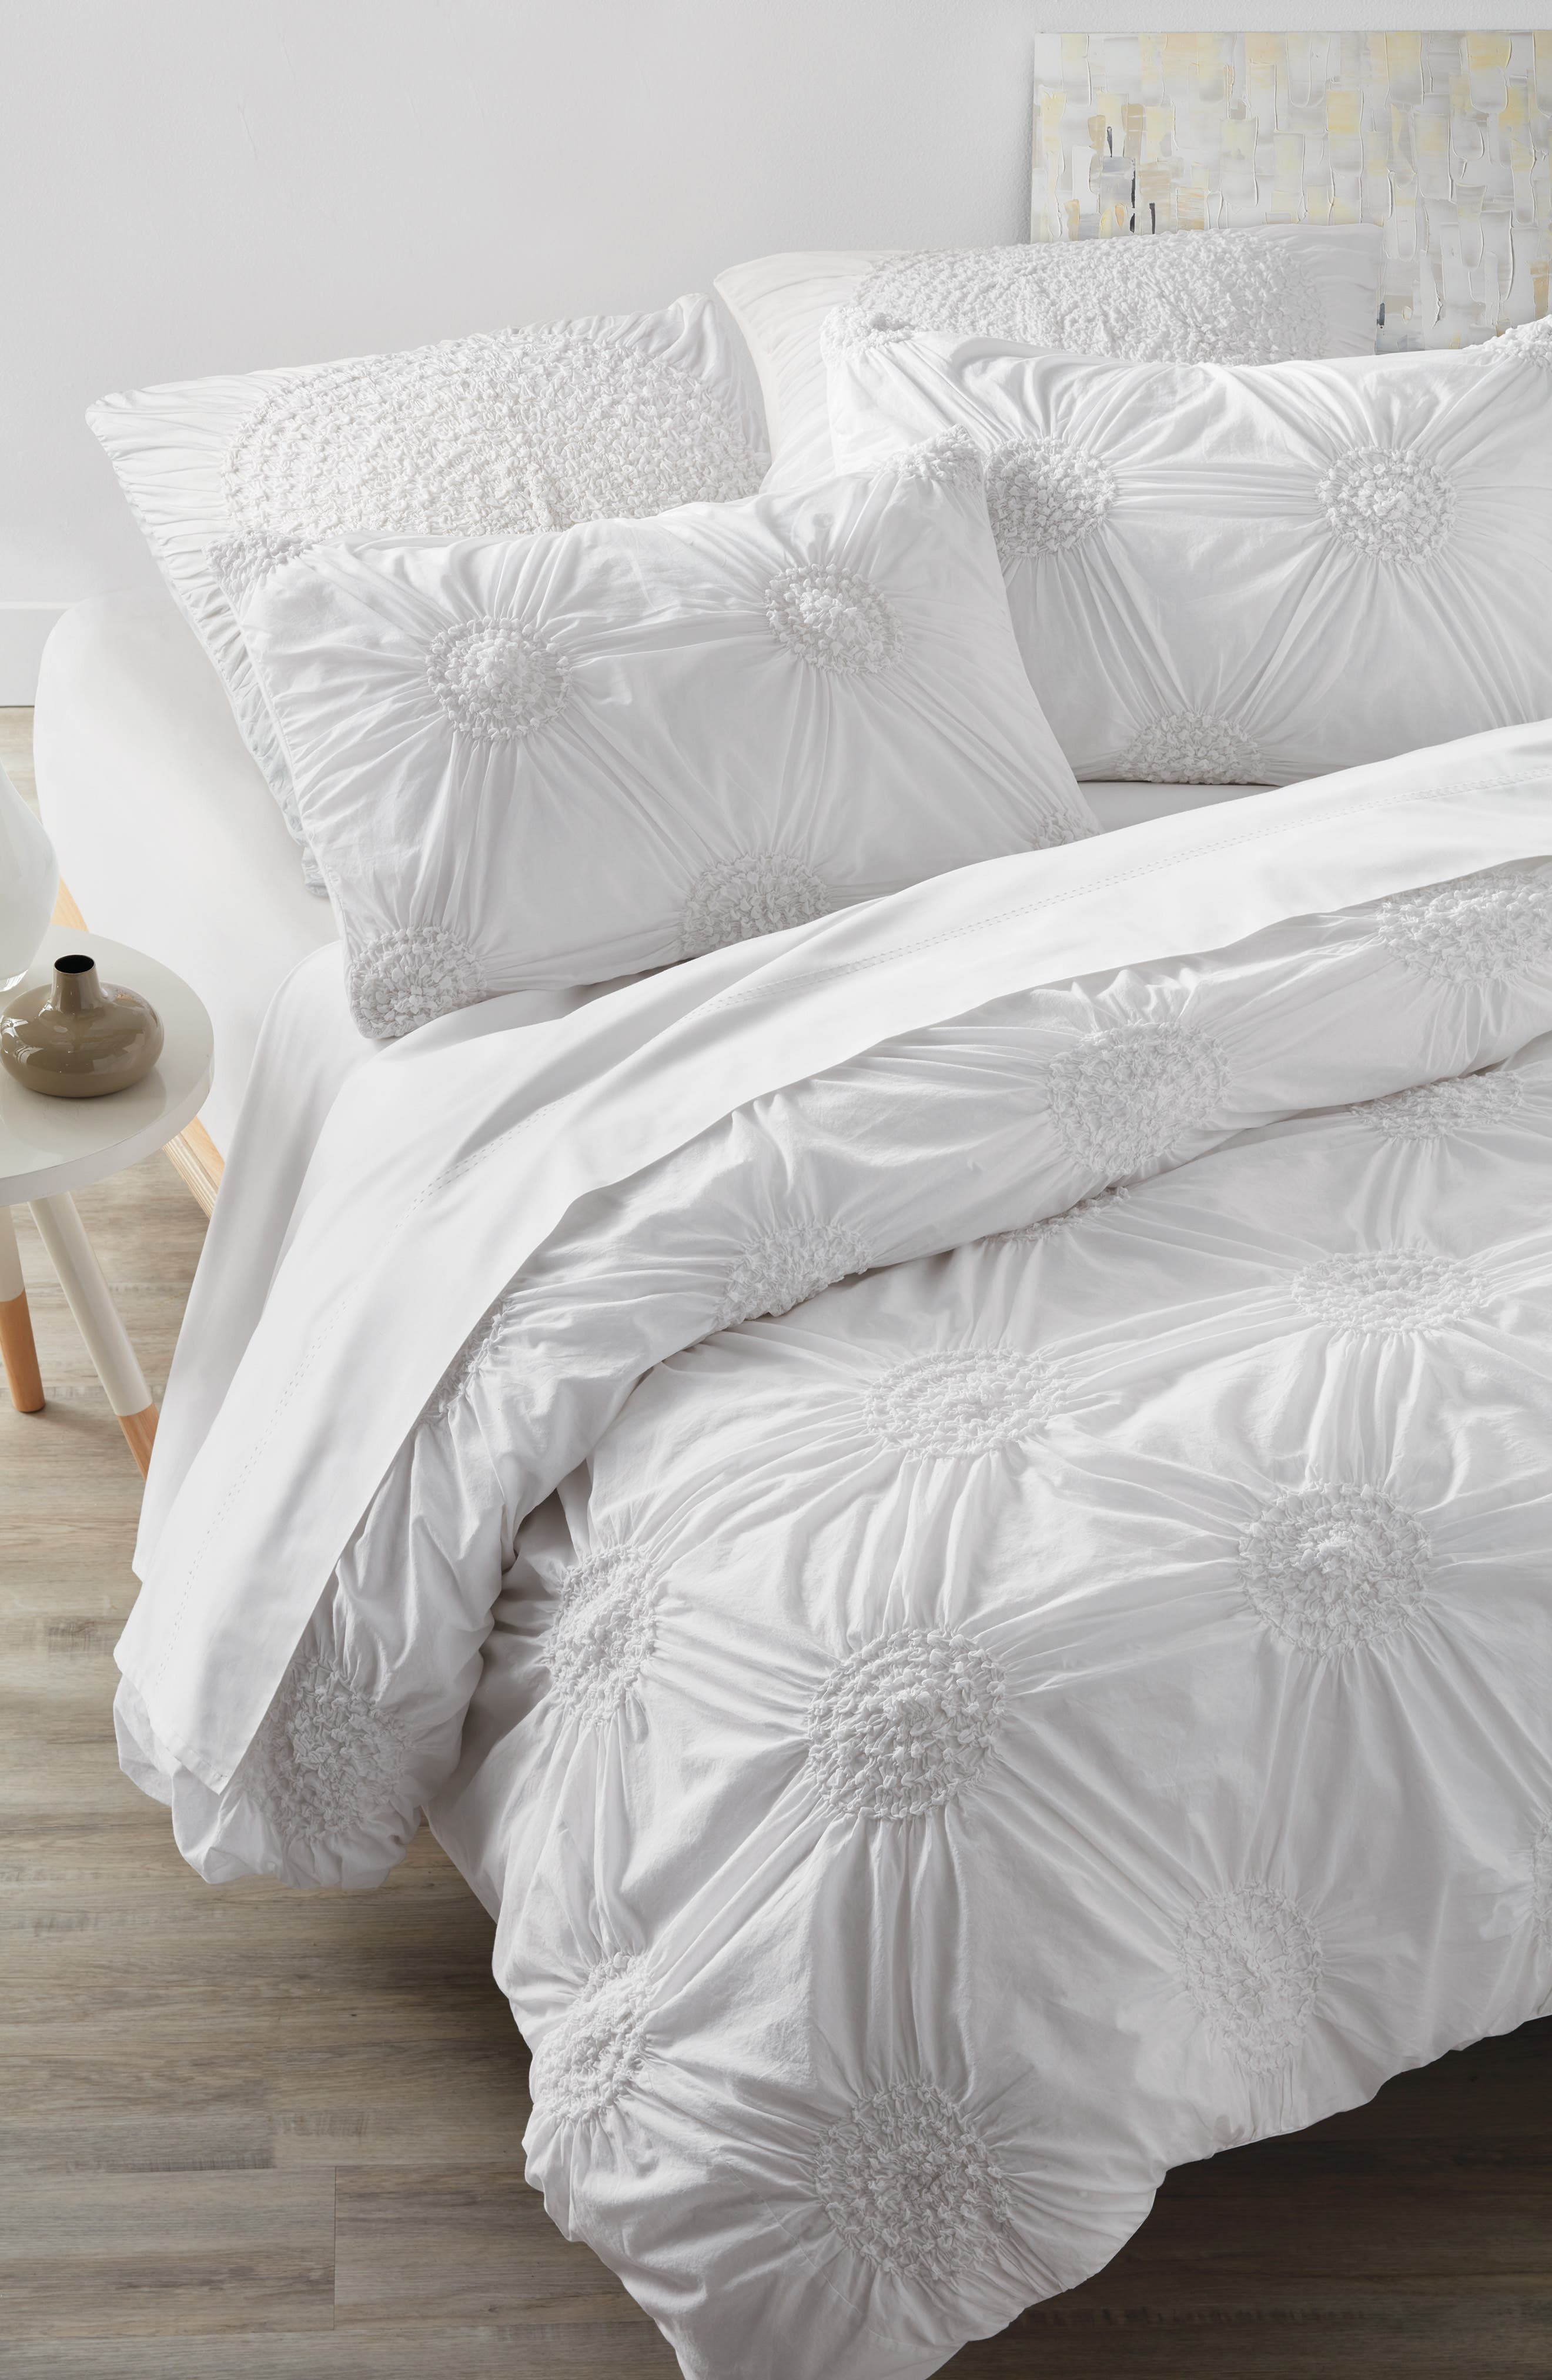 Twin modern duvet covers pillow shams nordstrom